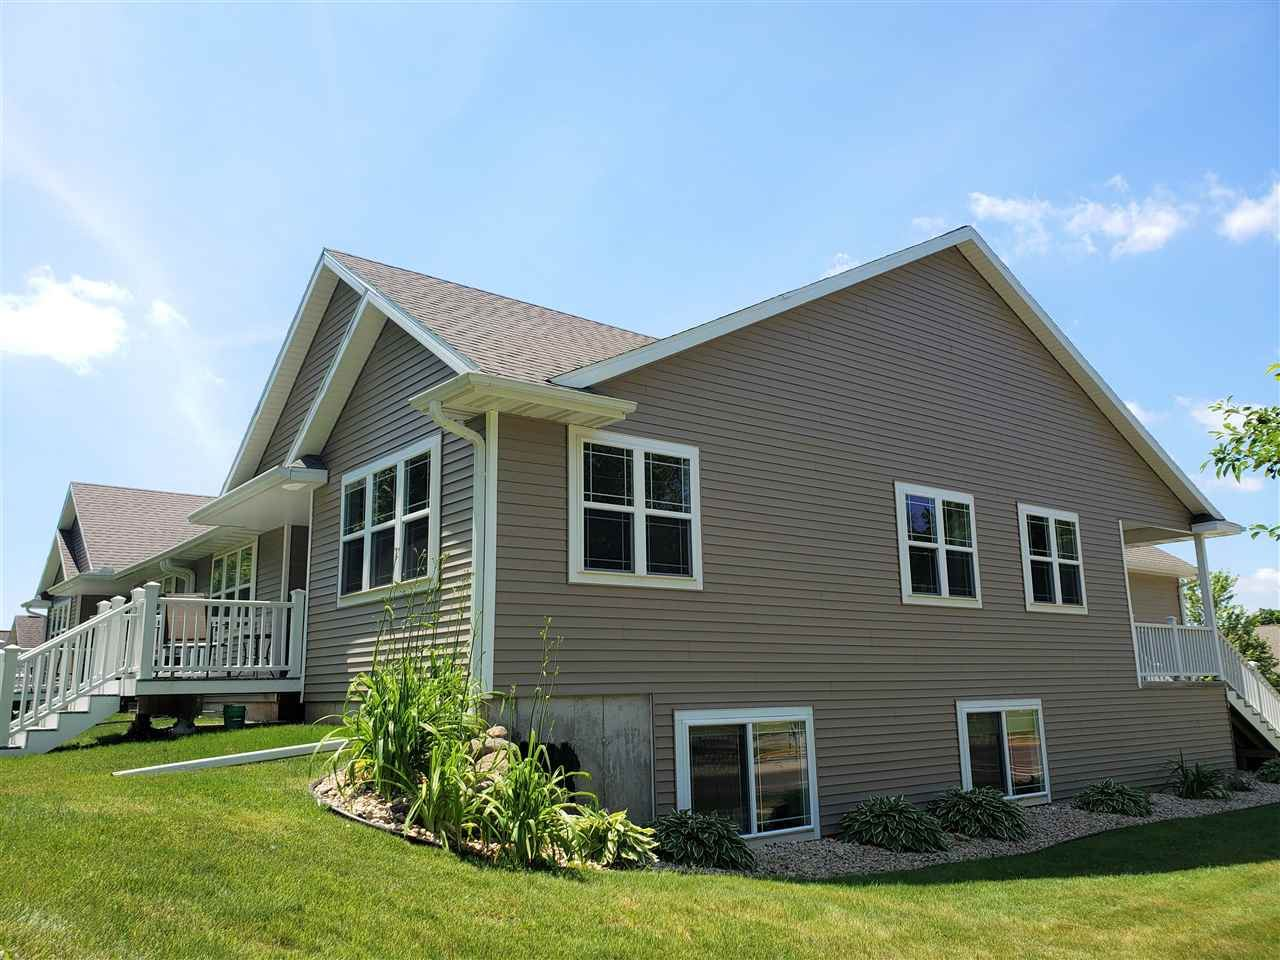 1803 Dondee Rd, Madison, WI 53716 - #: 1881591